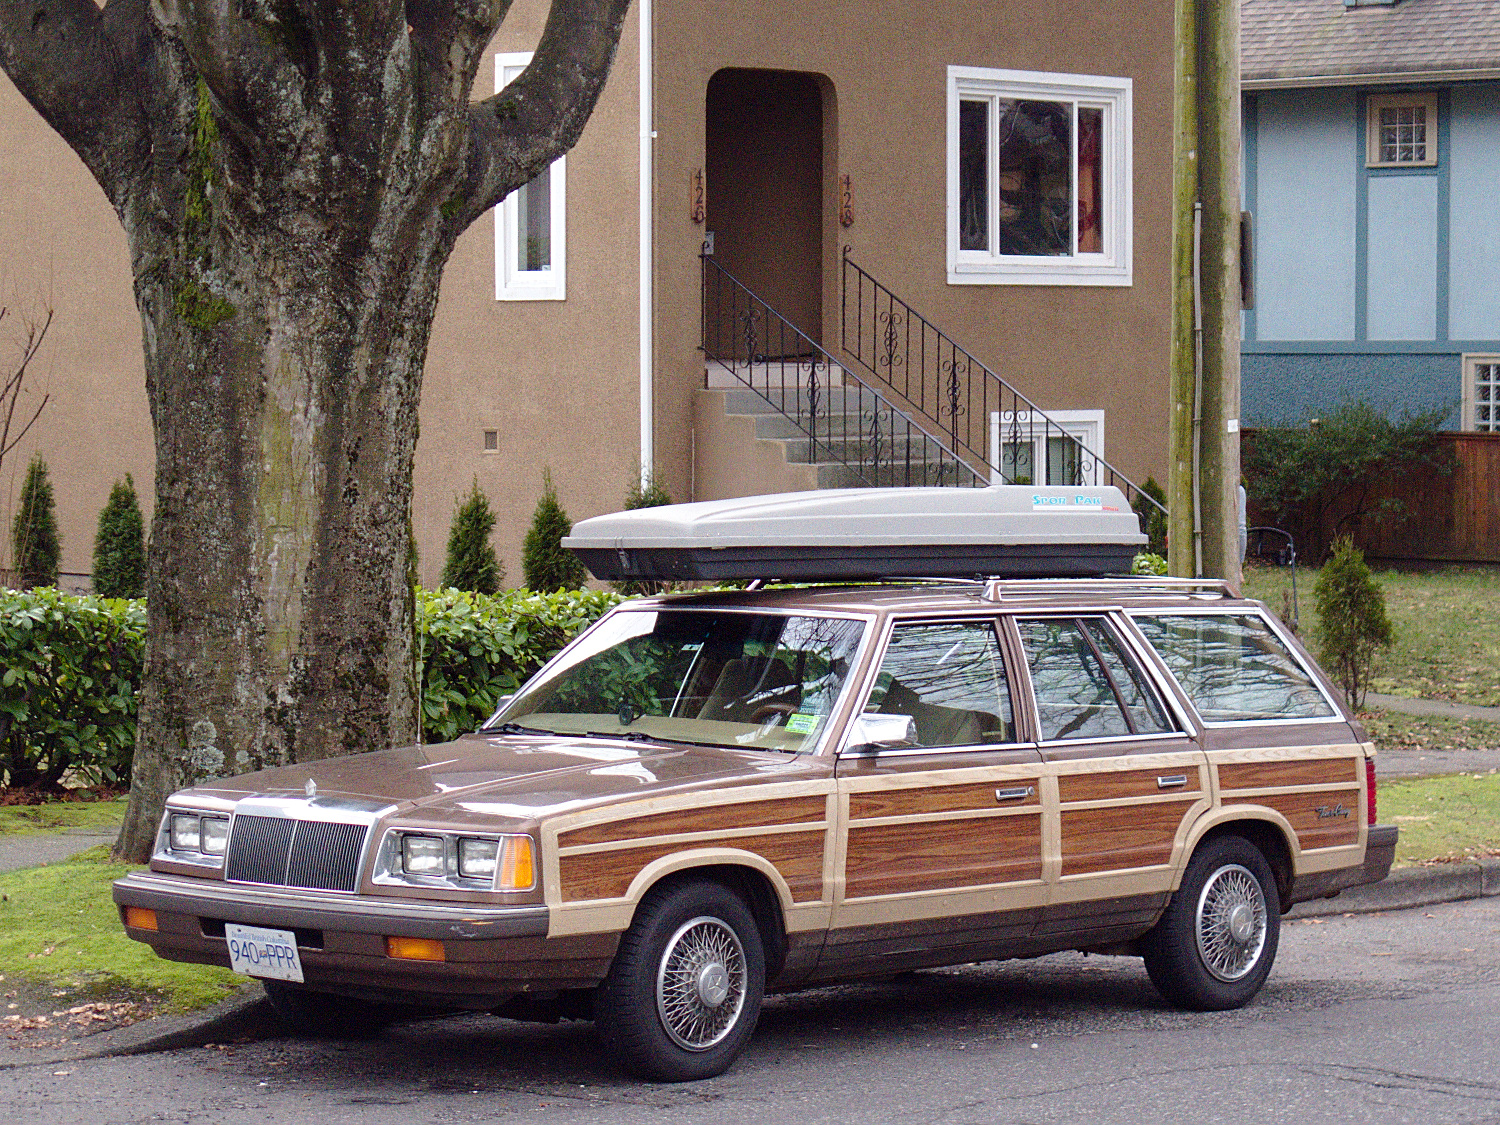 Old Parked Cars Vancouver: 1987 Chrysler LeBaron Town & Country Wagon